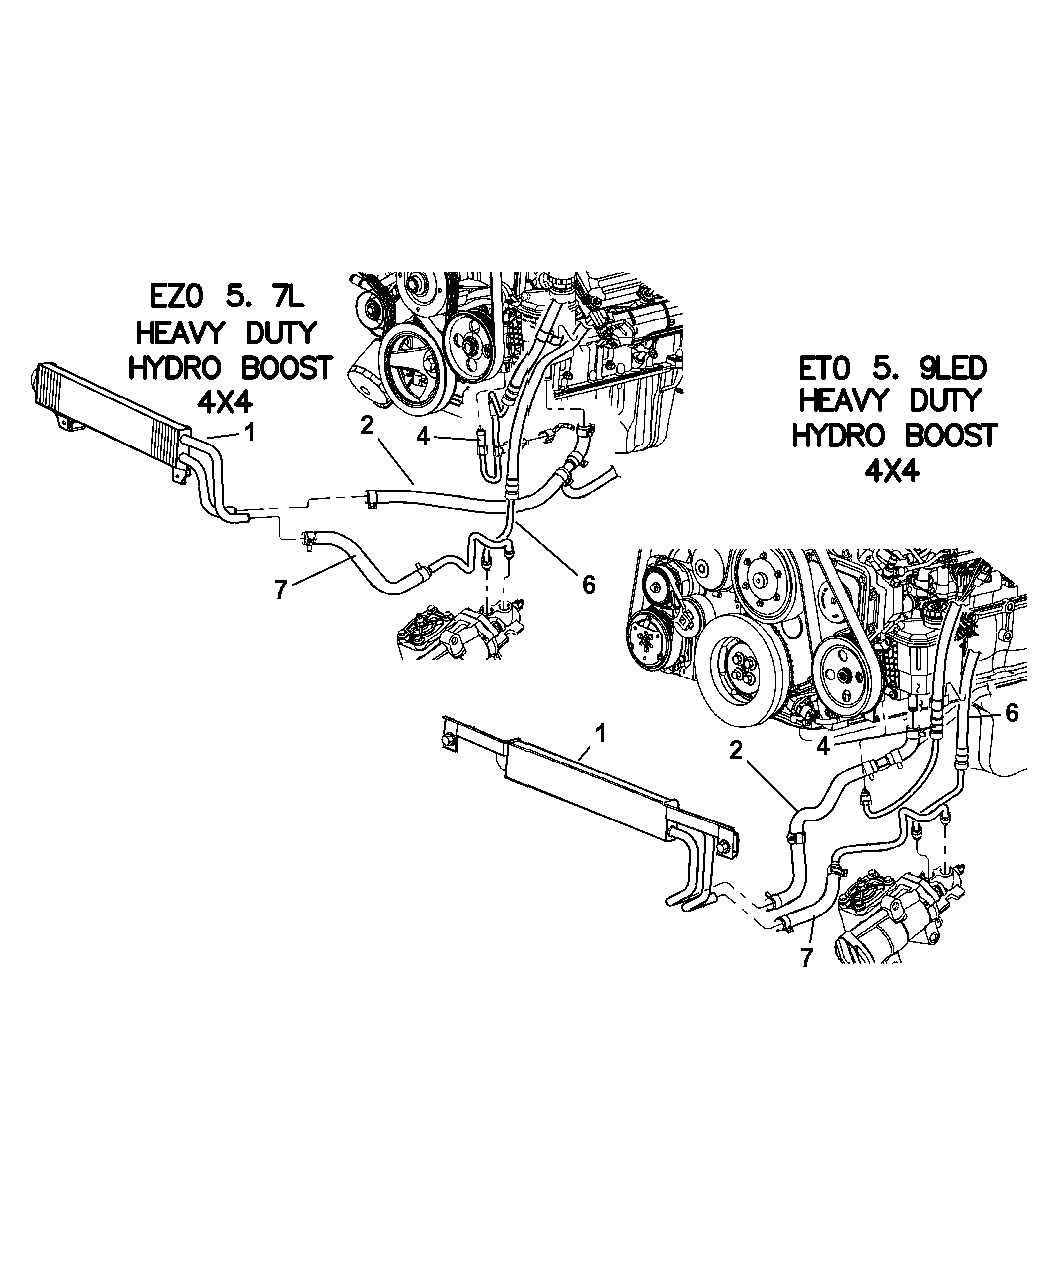 Wiring Diagram: 34 Dodge Ram Power Steering Hose Diagram